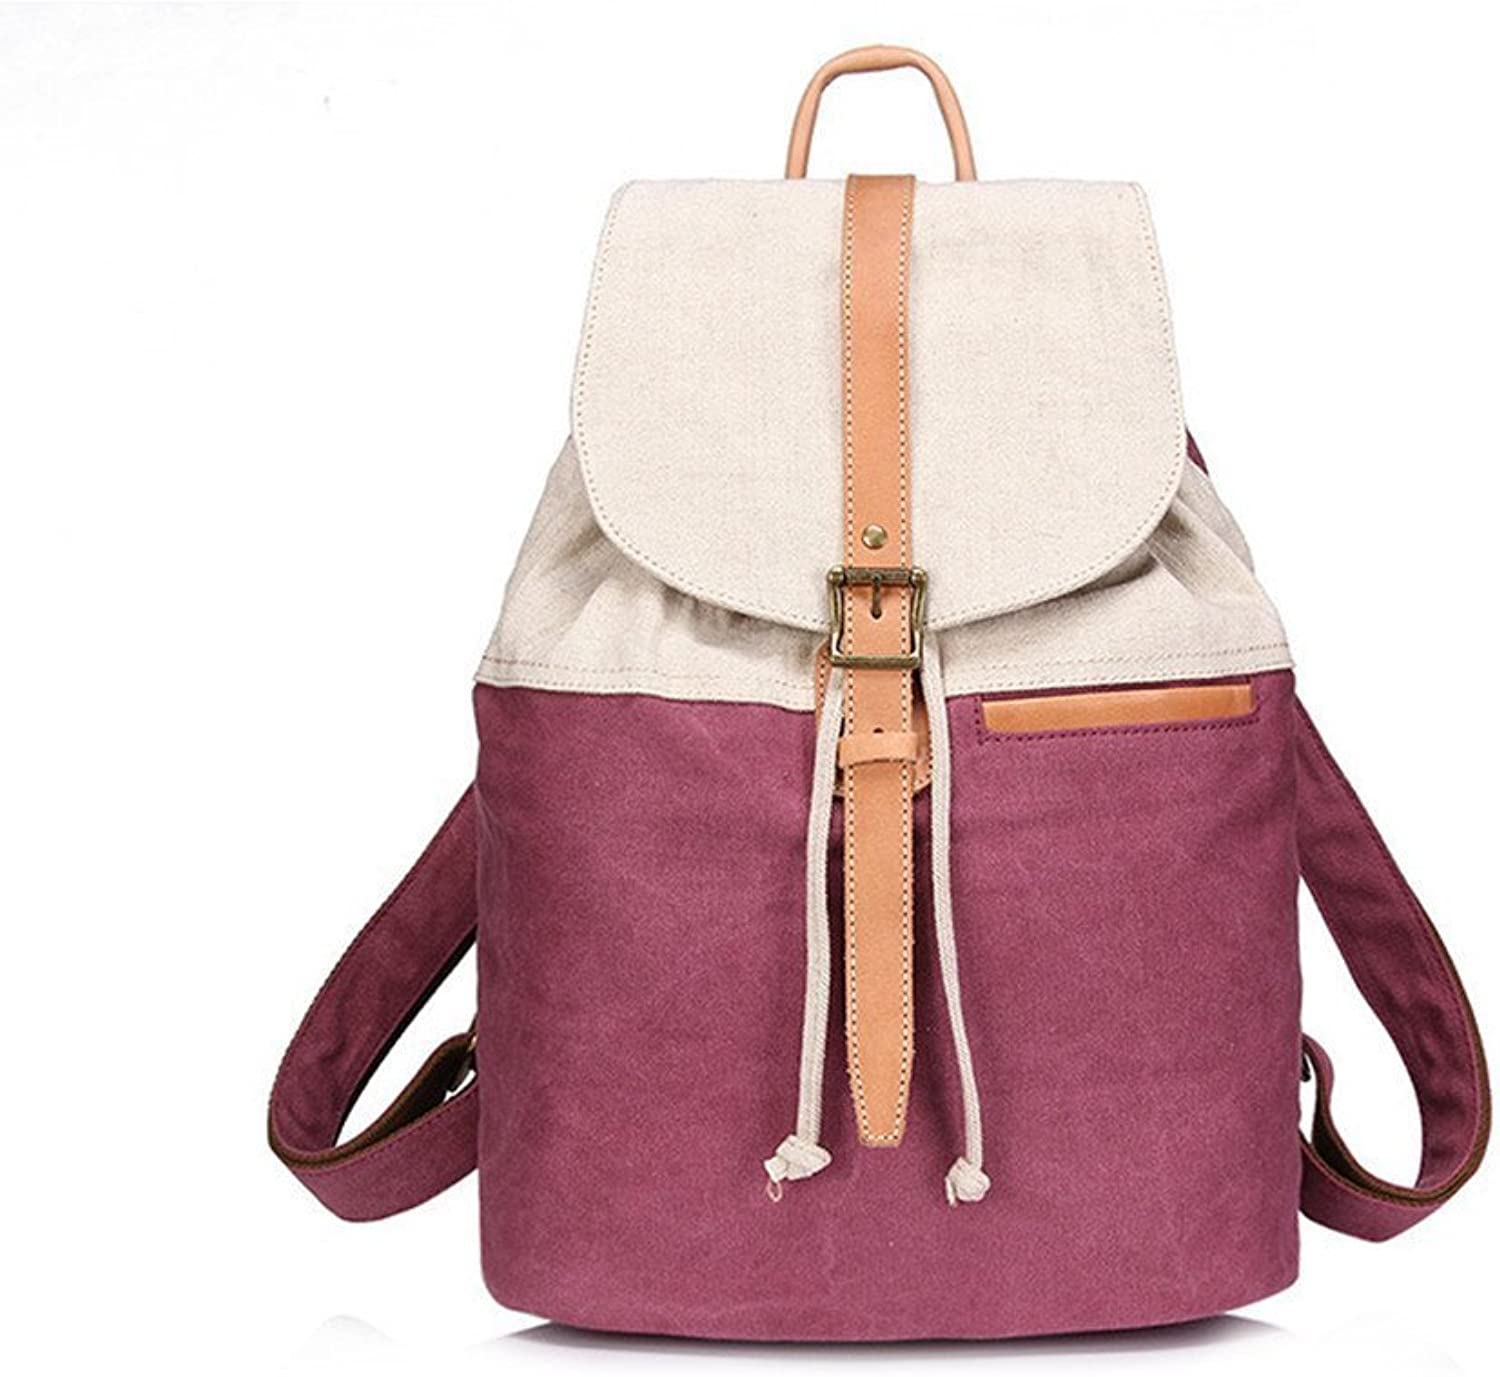 New, retro, personality, fashion, outdoor bag, backpack, canvas bag, D0219